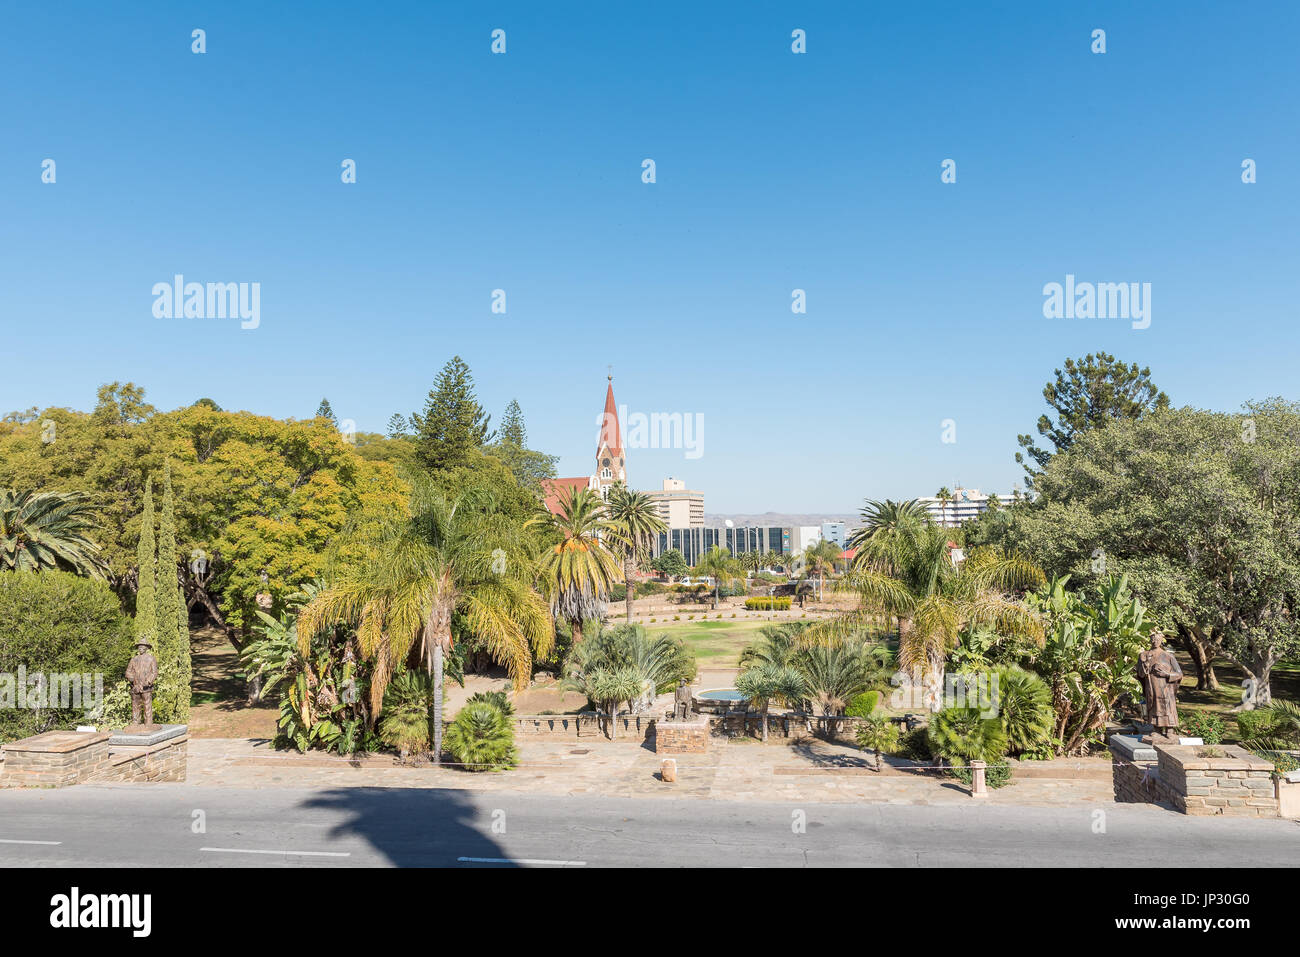 WINDHOEK, NAMIBIA - JUNE 17, 2017: Gardens at the Tintenpalast , the Namibian parliament building in Windhoek. Statues of Hendrik Samuel Witbooi Hosea - Stock Image